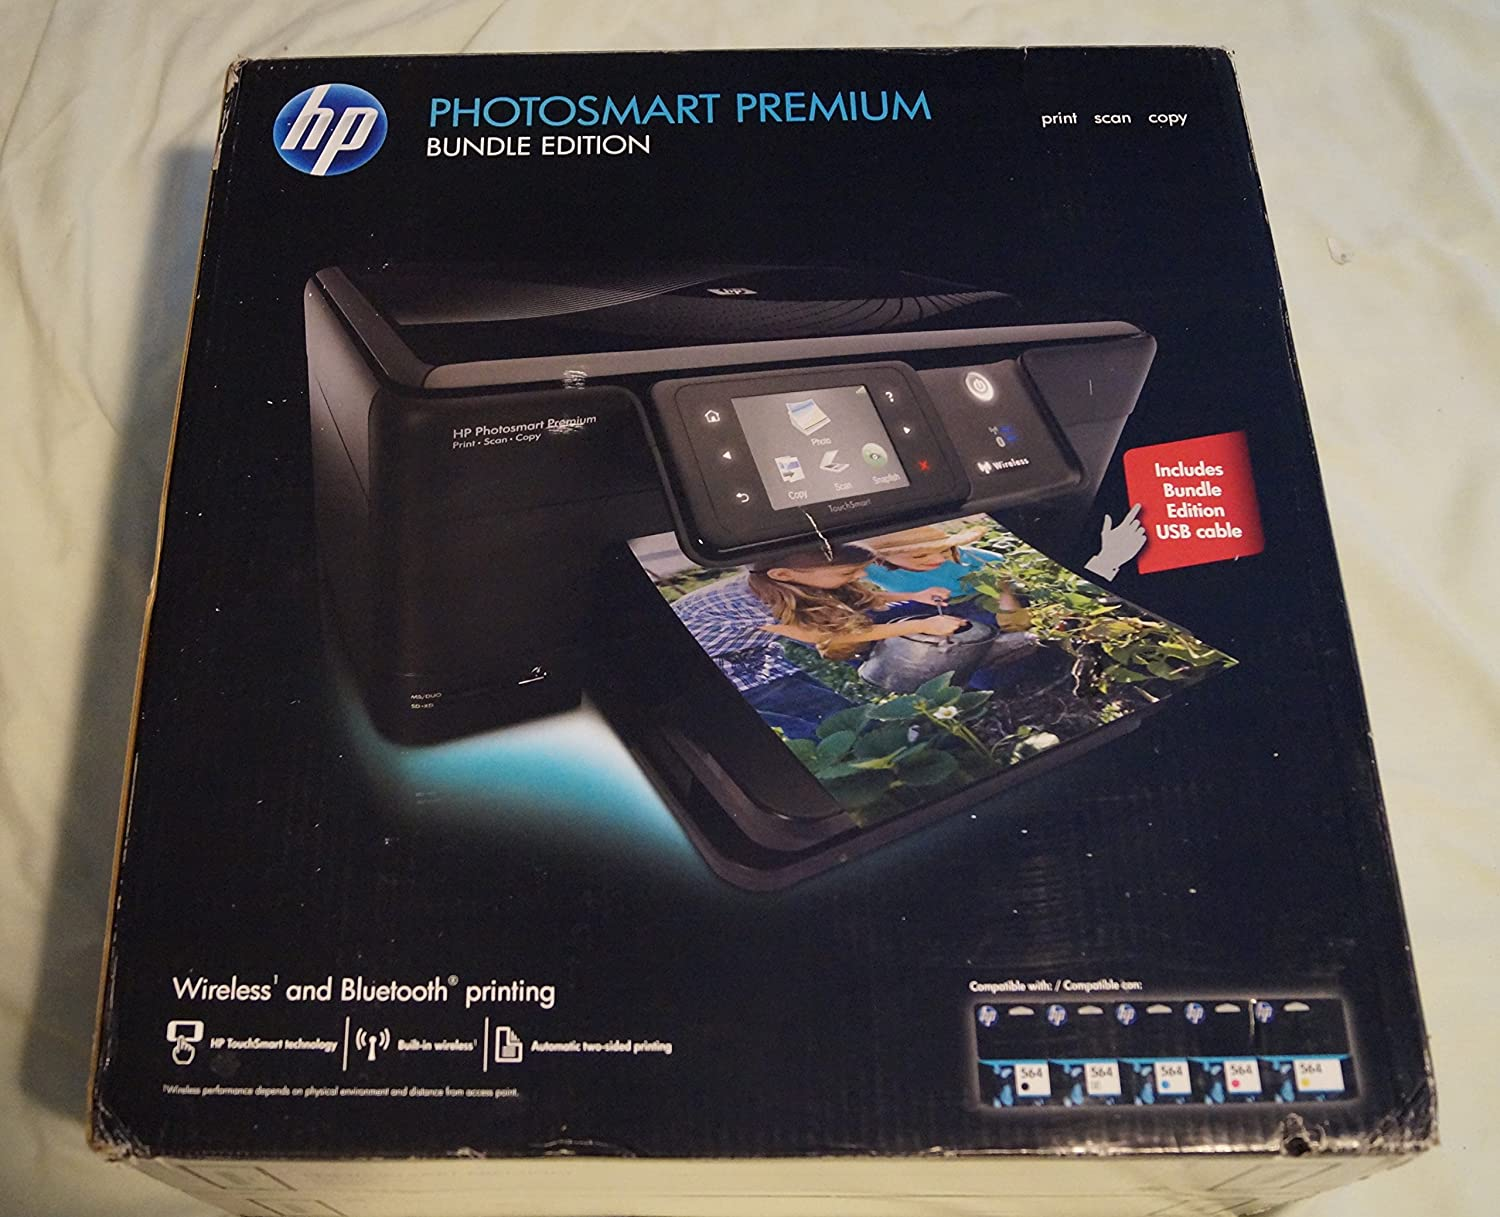 HEWCD055A - HP Photosmart C309g Premium All-in-One Printer w/Duplex Printing/Wireless